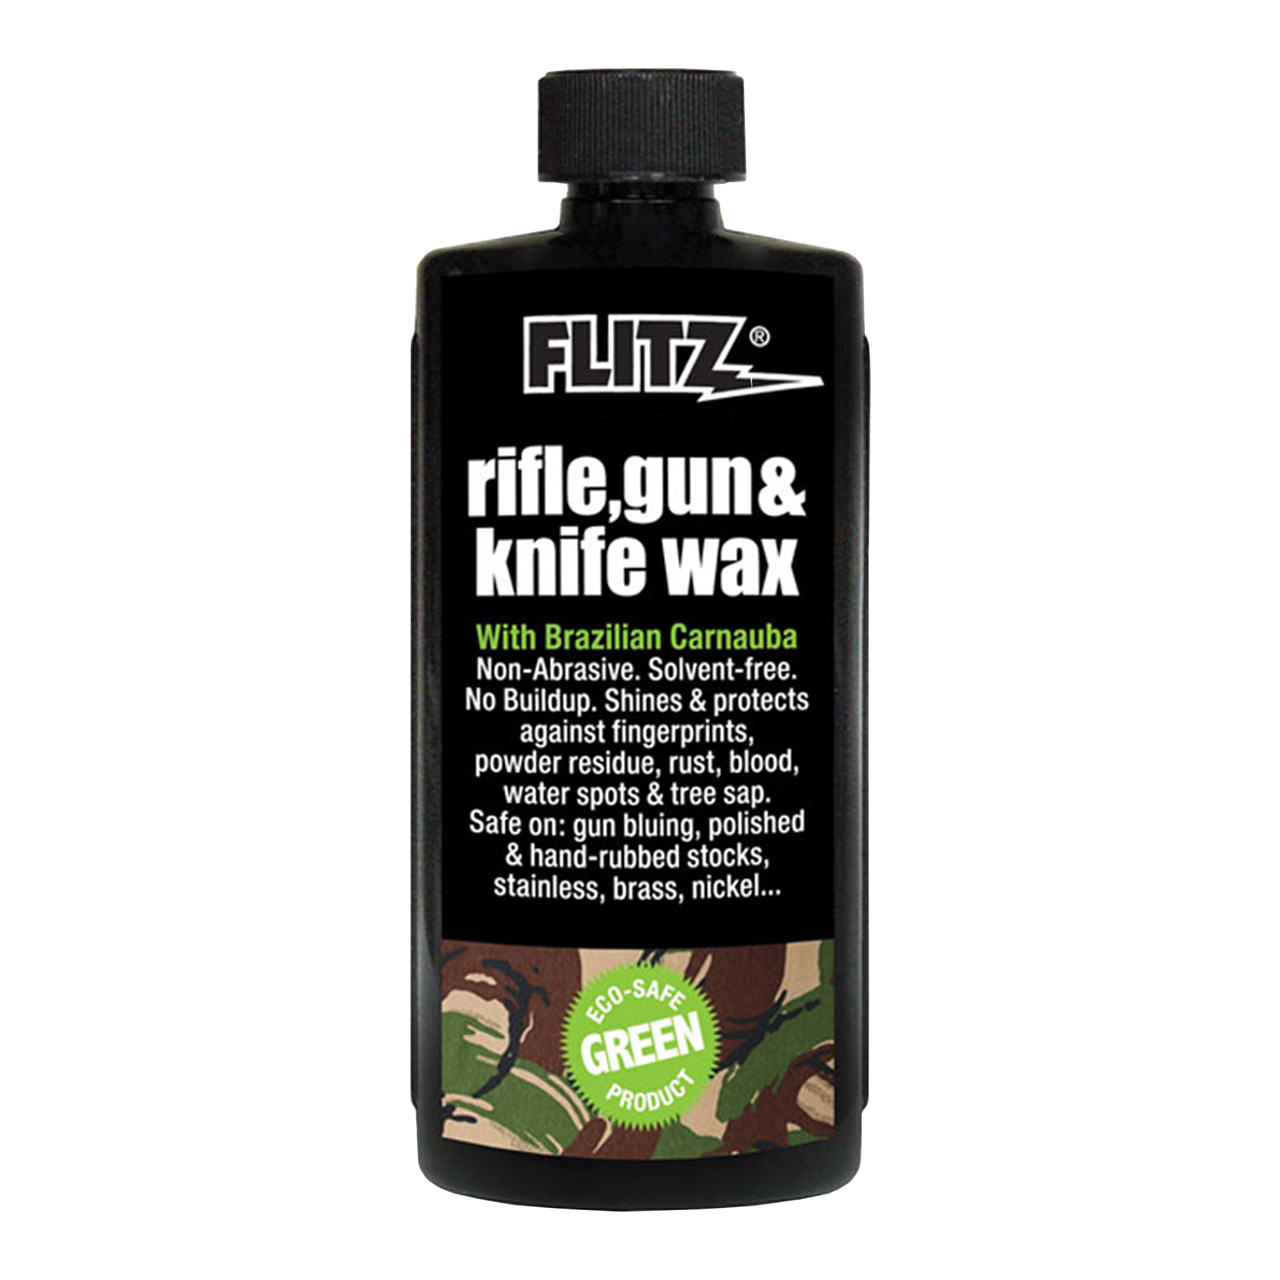 White carnauba and beeswax formula for gun bluing, polished or hand-rubbed stocks, stainless and nickel firearms.